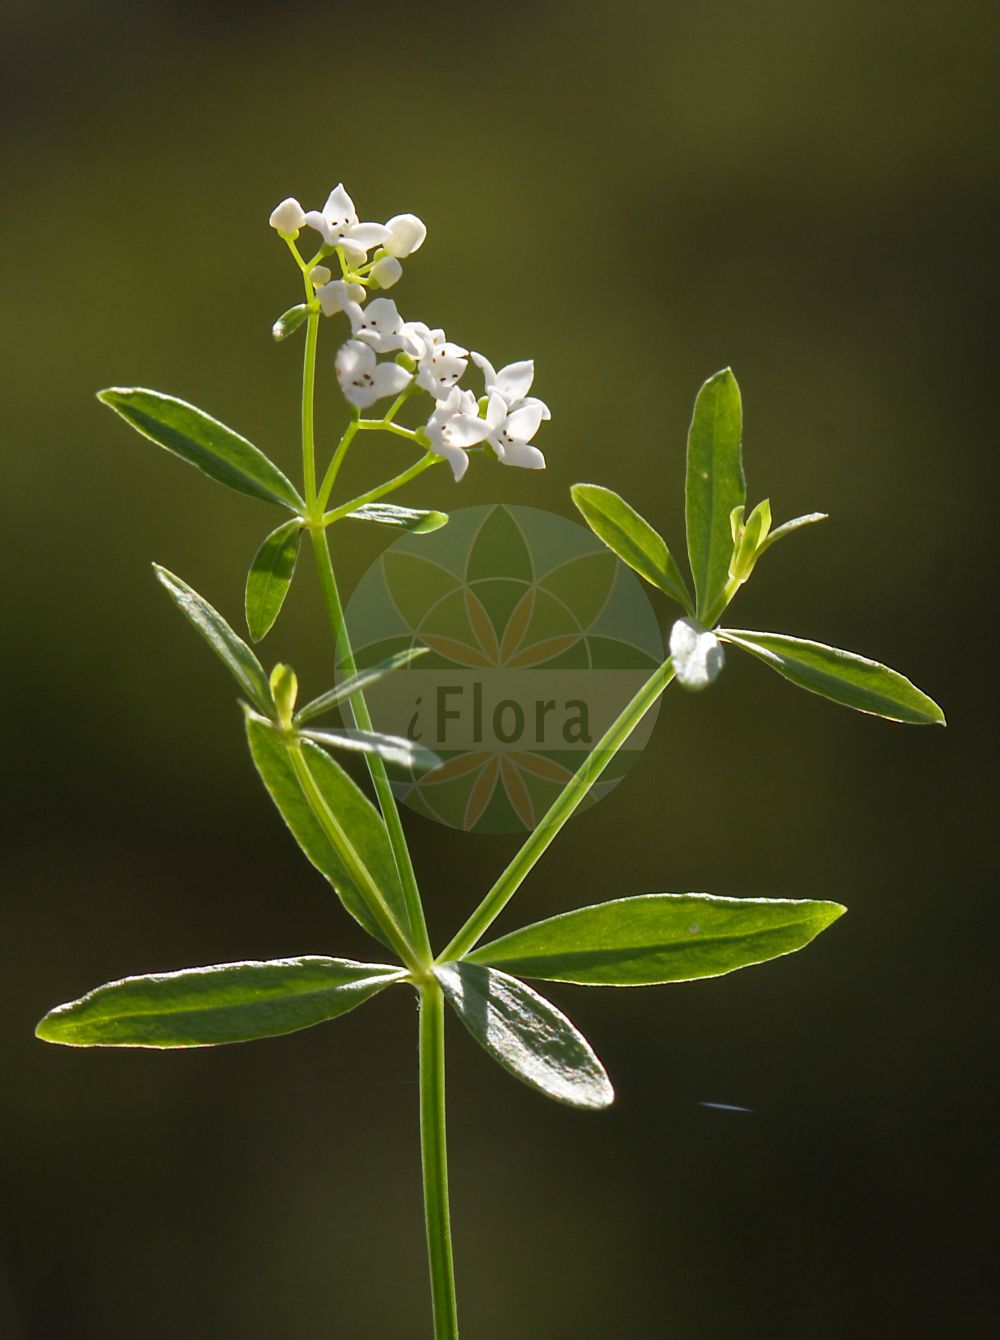 Foto von Galium elongatum (Hohes Labkraut - Great Marsh Bedstraw). Das Bild zeigt Blatt und Bluete. Das Foto wurde in Breiden, Roedermark, Offenbach, Hessen, Deutschland, Oberrheinisches Tiefland und Rhein-Main-Ebene aufgenommen. ---- Photo of Galium elongatum (Hohes Labkraut - Great Marsh Bedstraw).The image is showing leaf and flower.The picture was taken in Breiden, Roedermark, Offenbach, Hesse, Germany, Oberrheinisches Tiefland and Rhein-Main-Ebene.(Galium elongatum,Hohes Labkraut,Great Marsh Bedstraw,Galium maximum,Galium palustre subsp. elongatum,Galium,Labkraut,Bedstraw,Rubiaceae,Roetegewaechse;Kaffeegewaechse;Krappgewaechse;Labkrautgewaechse,Bedstraw family,Blatt,Bluete,leaf,flower)